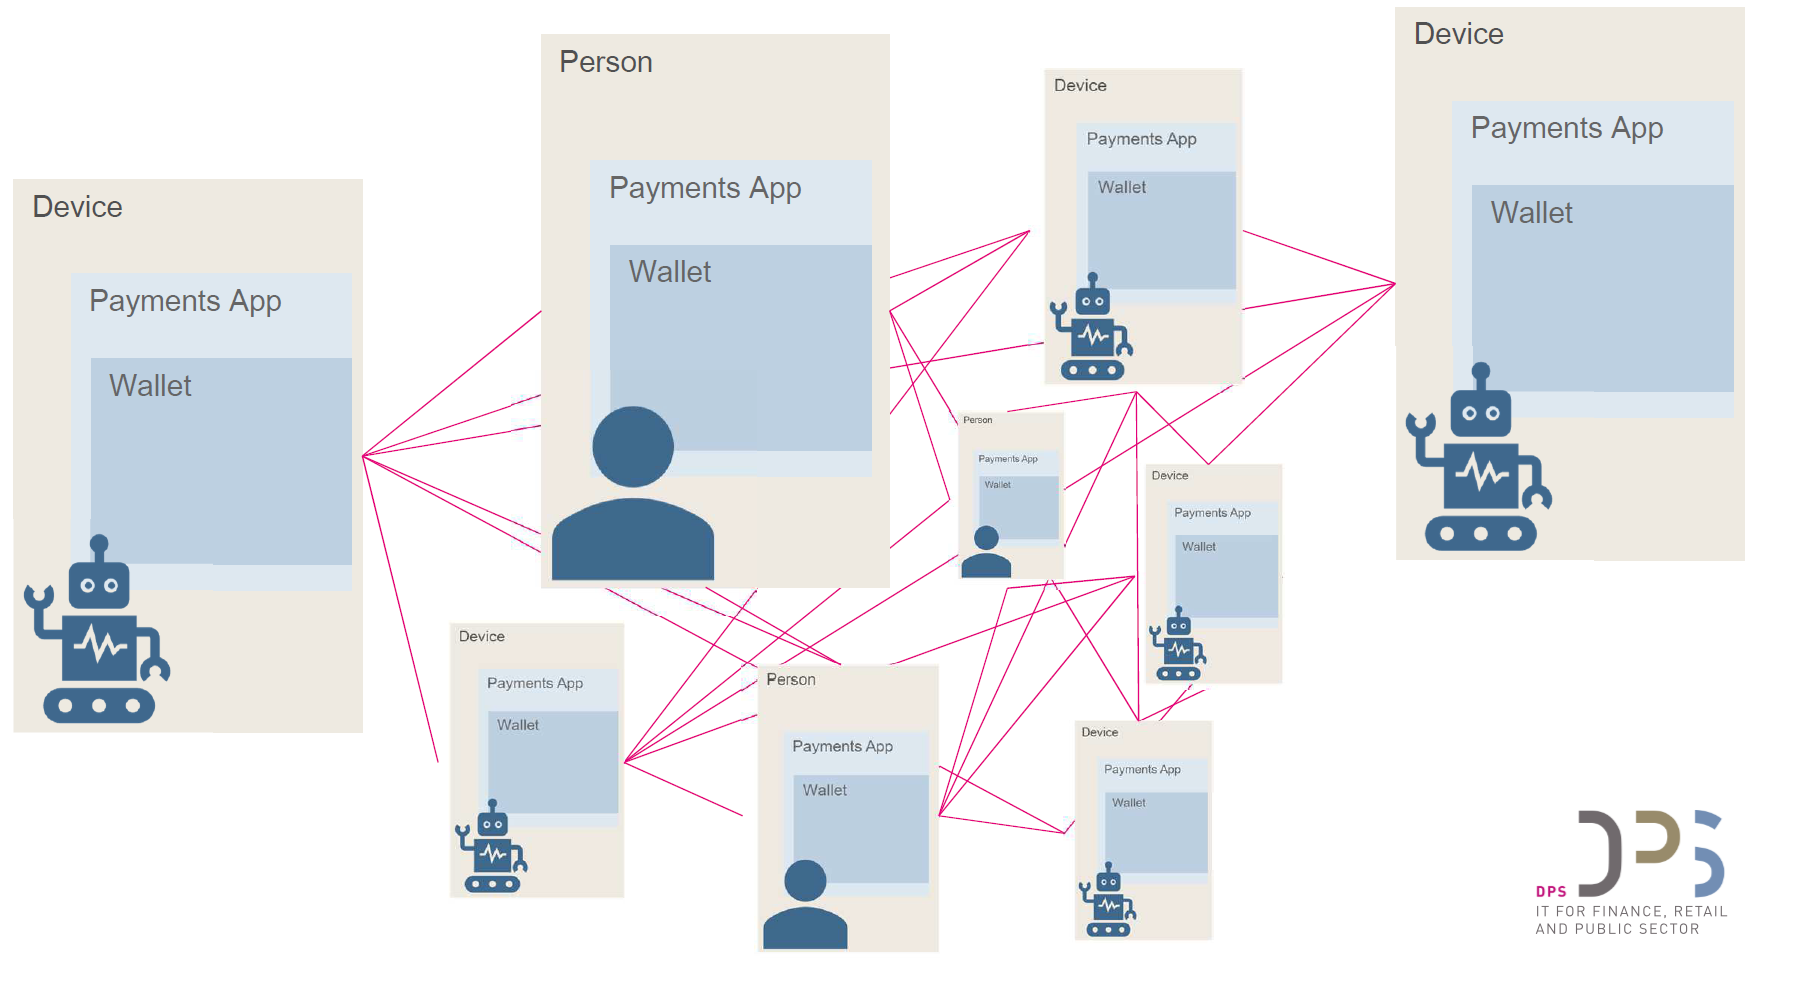 Token-based Machine Payments using Machine Wallets to store payment tokens